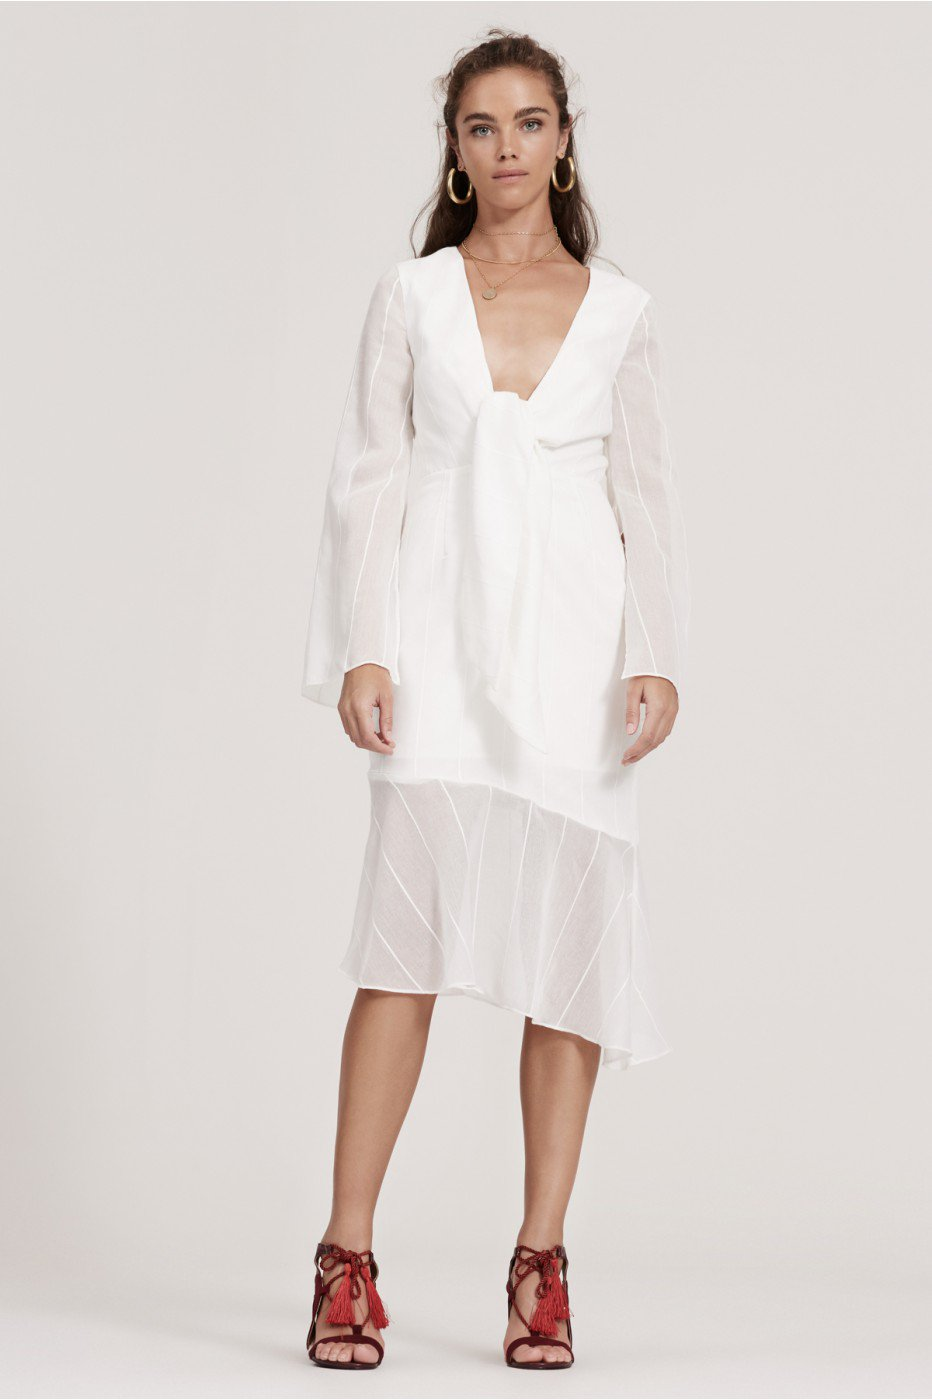 FINDERS KEEPERS SANCTUARY DRESS ivory